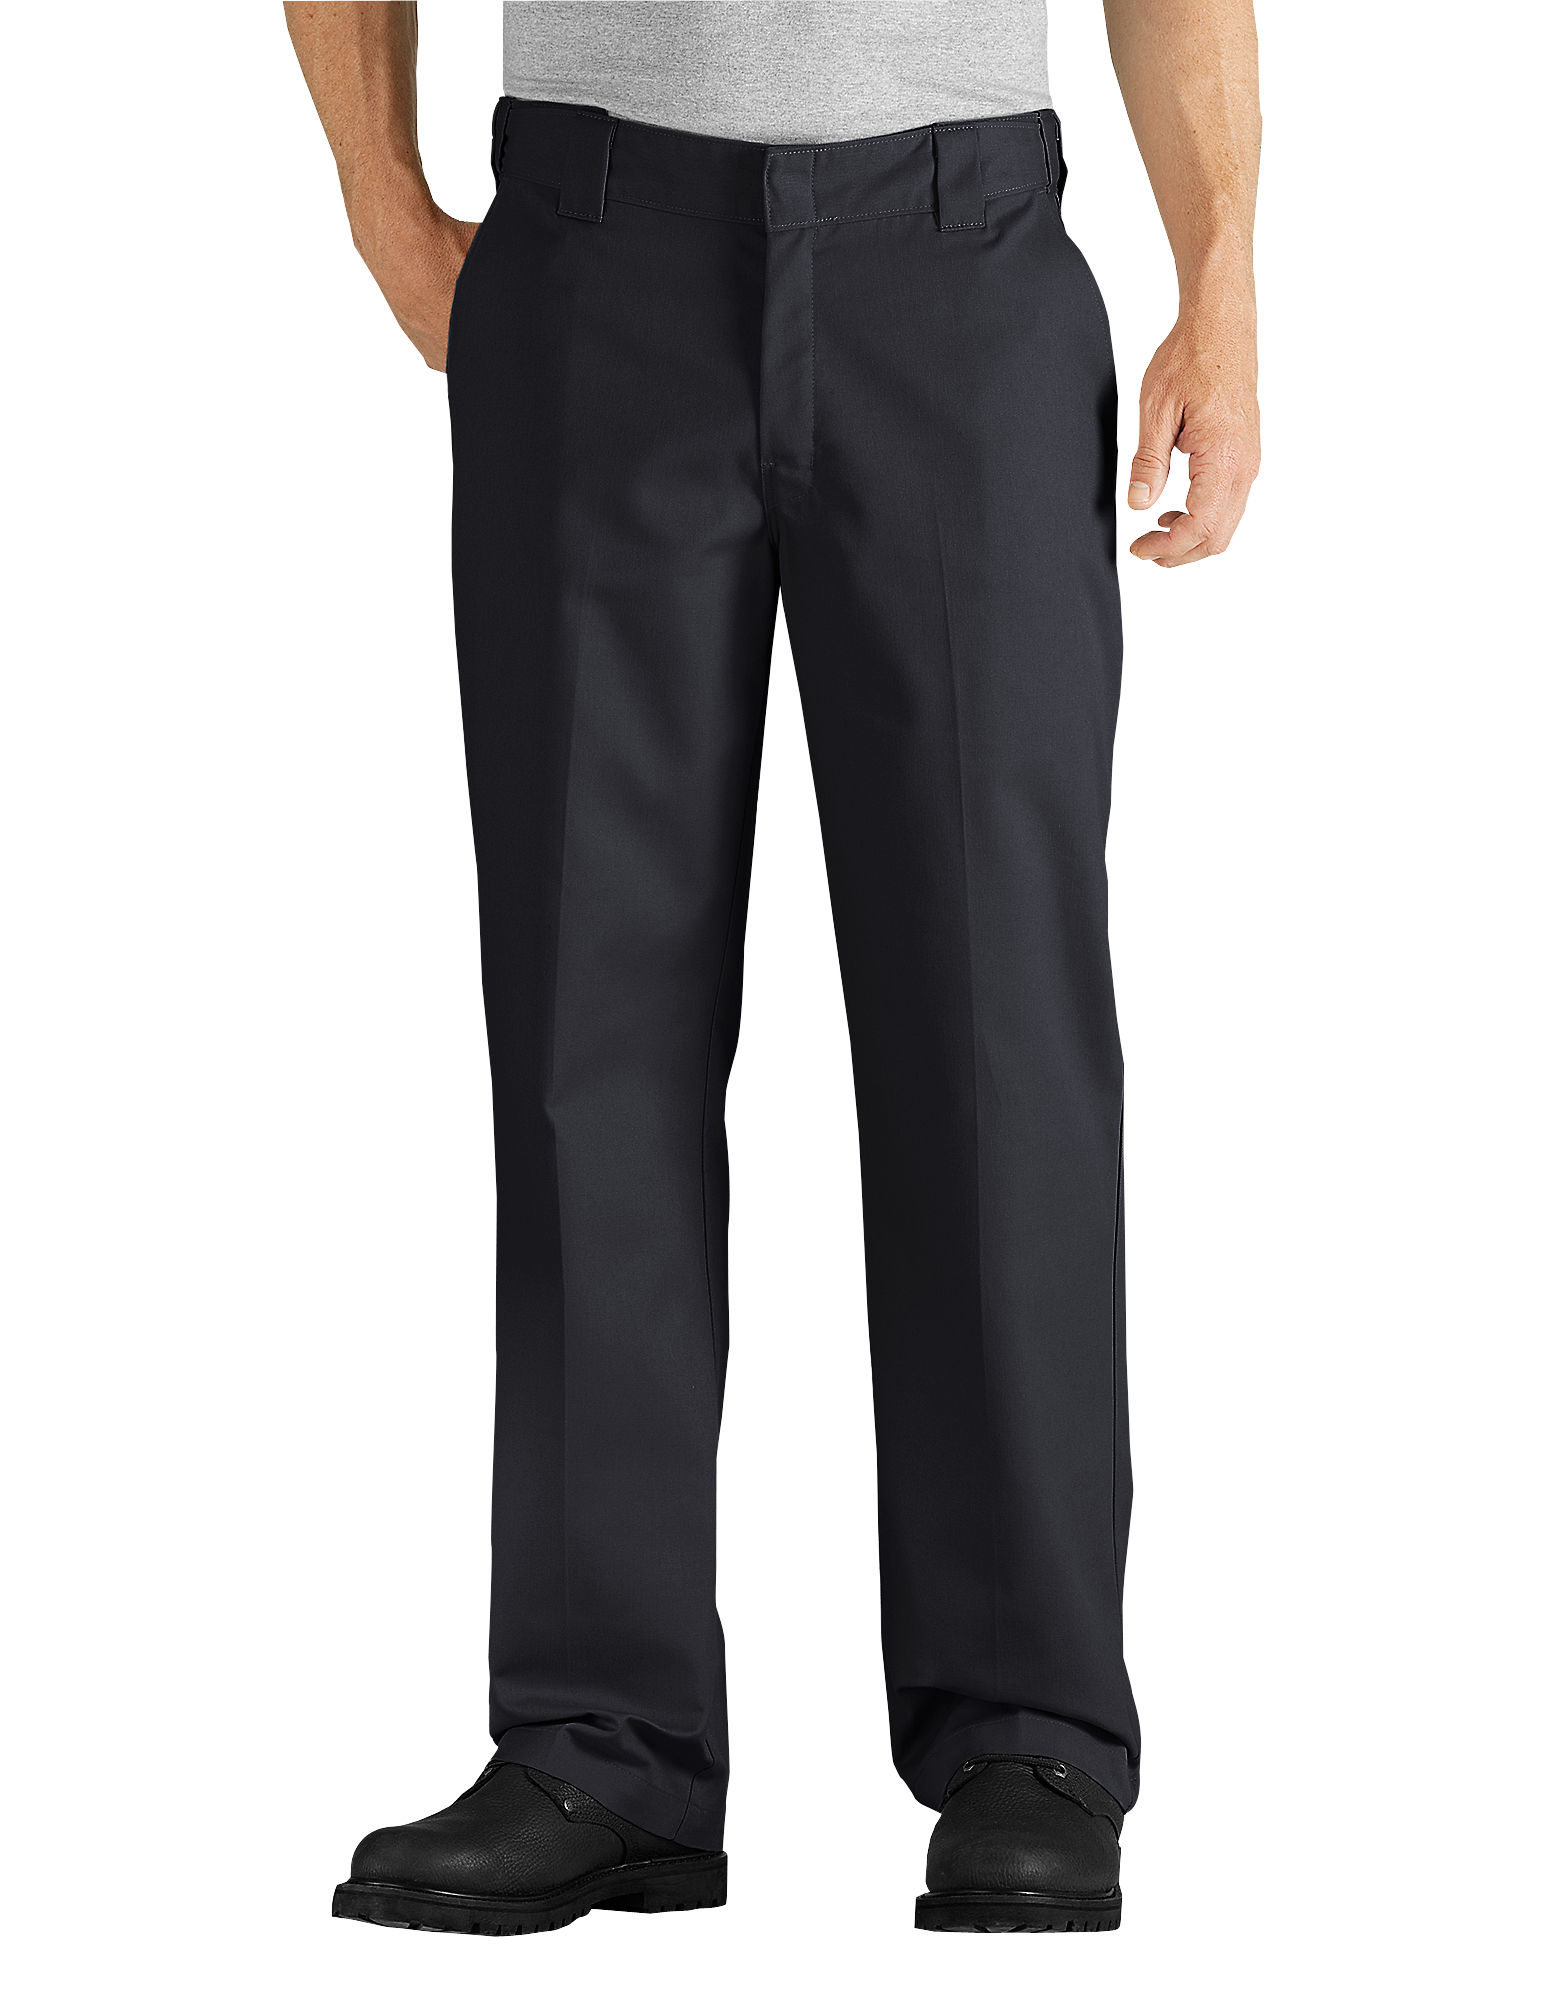 de28db7a Dickies Mens Relaxed Fit Straight Leg Comfort Waist Work Pant WP824